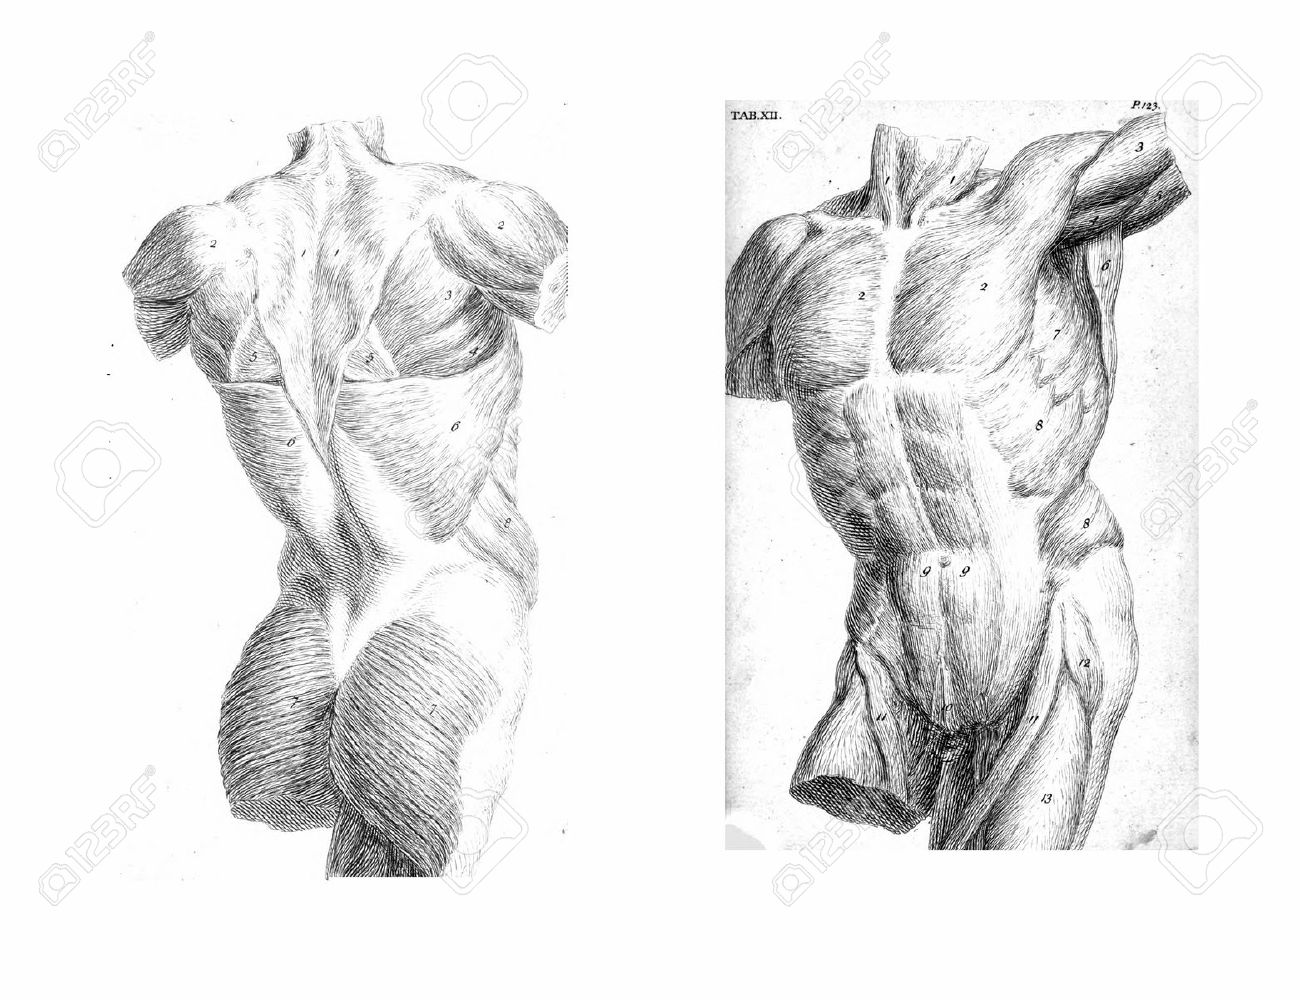 2 Views Of The Human Torso Muscles And Internal Organs From Stock